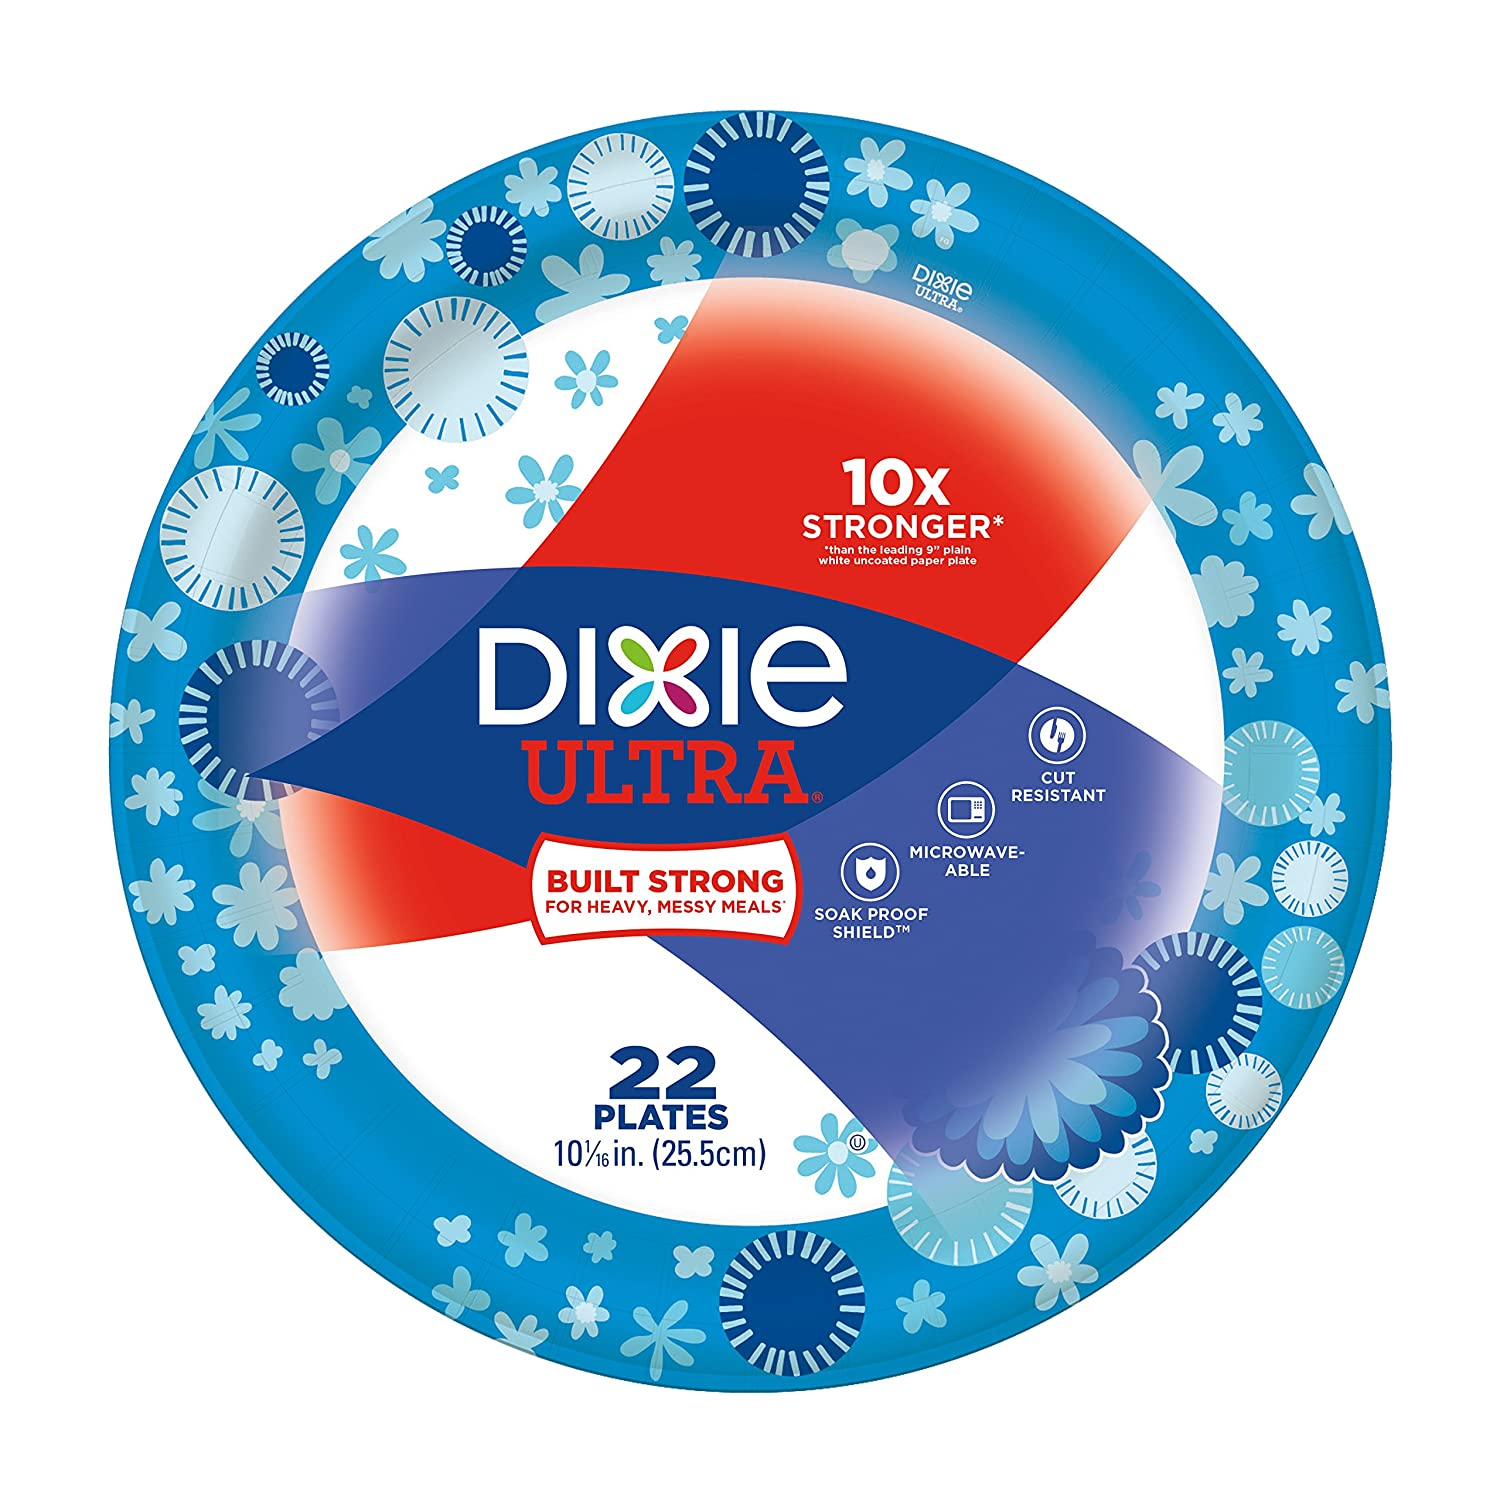 Amazon.com Dixie Ultra Disposable Paper Plates 10 1/16 Inch 22 Count (Pack of 4) Health u0026 Personal Care  sc 1 st  Amazon.com & Amazon.com: Dixie Ultra Disposable Paper Plates 10 1/16 Inch 22 ...